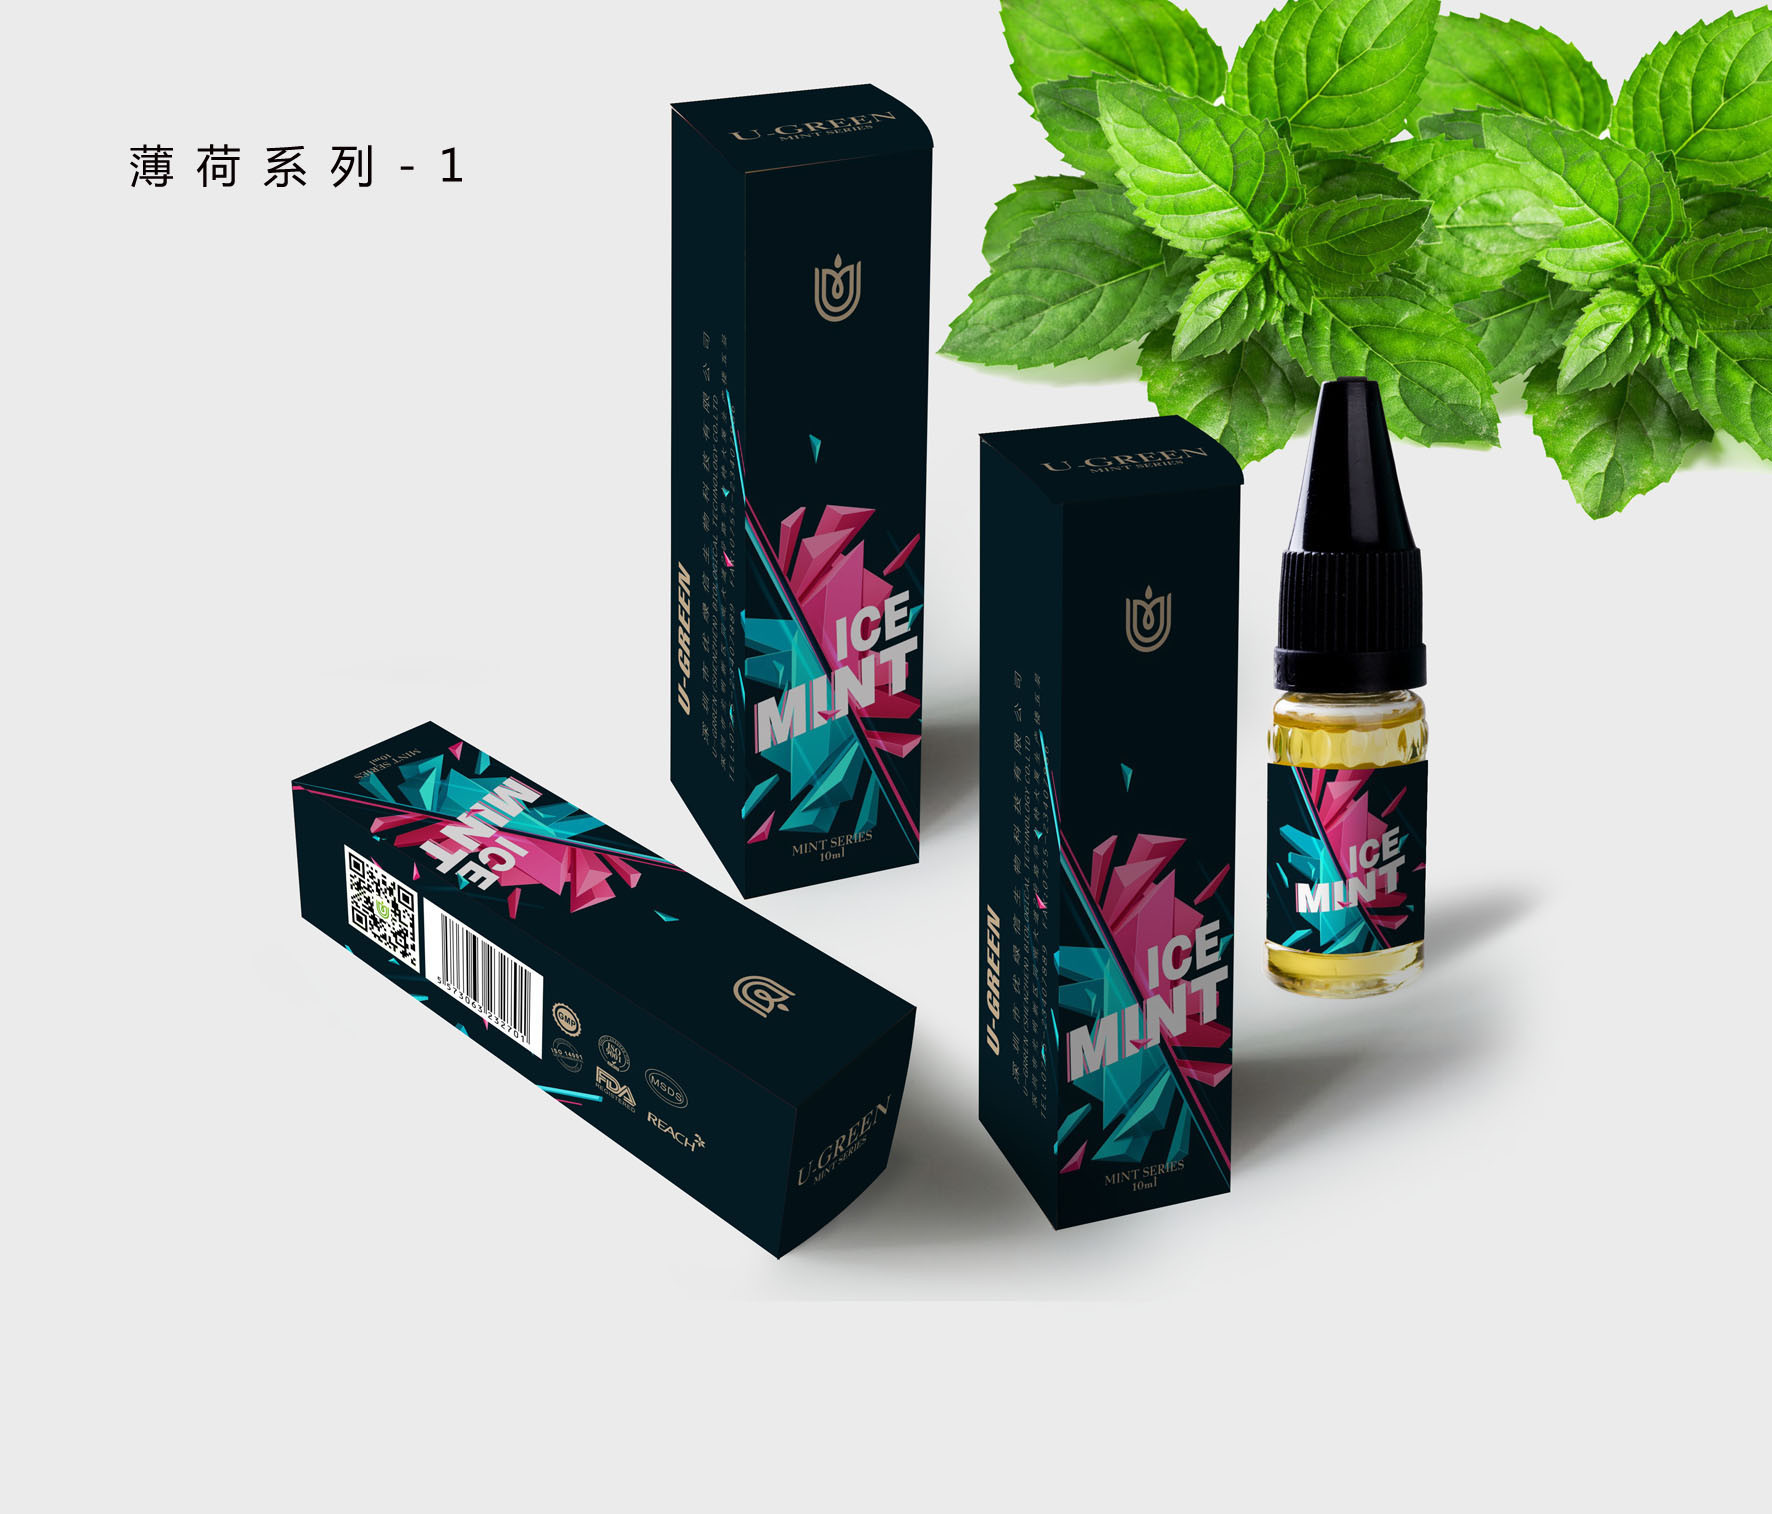 Fresh Mint Menthol Strong Mint Green Mint Doublemint Juce E-Liquid